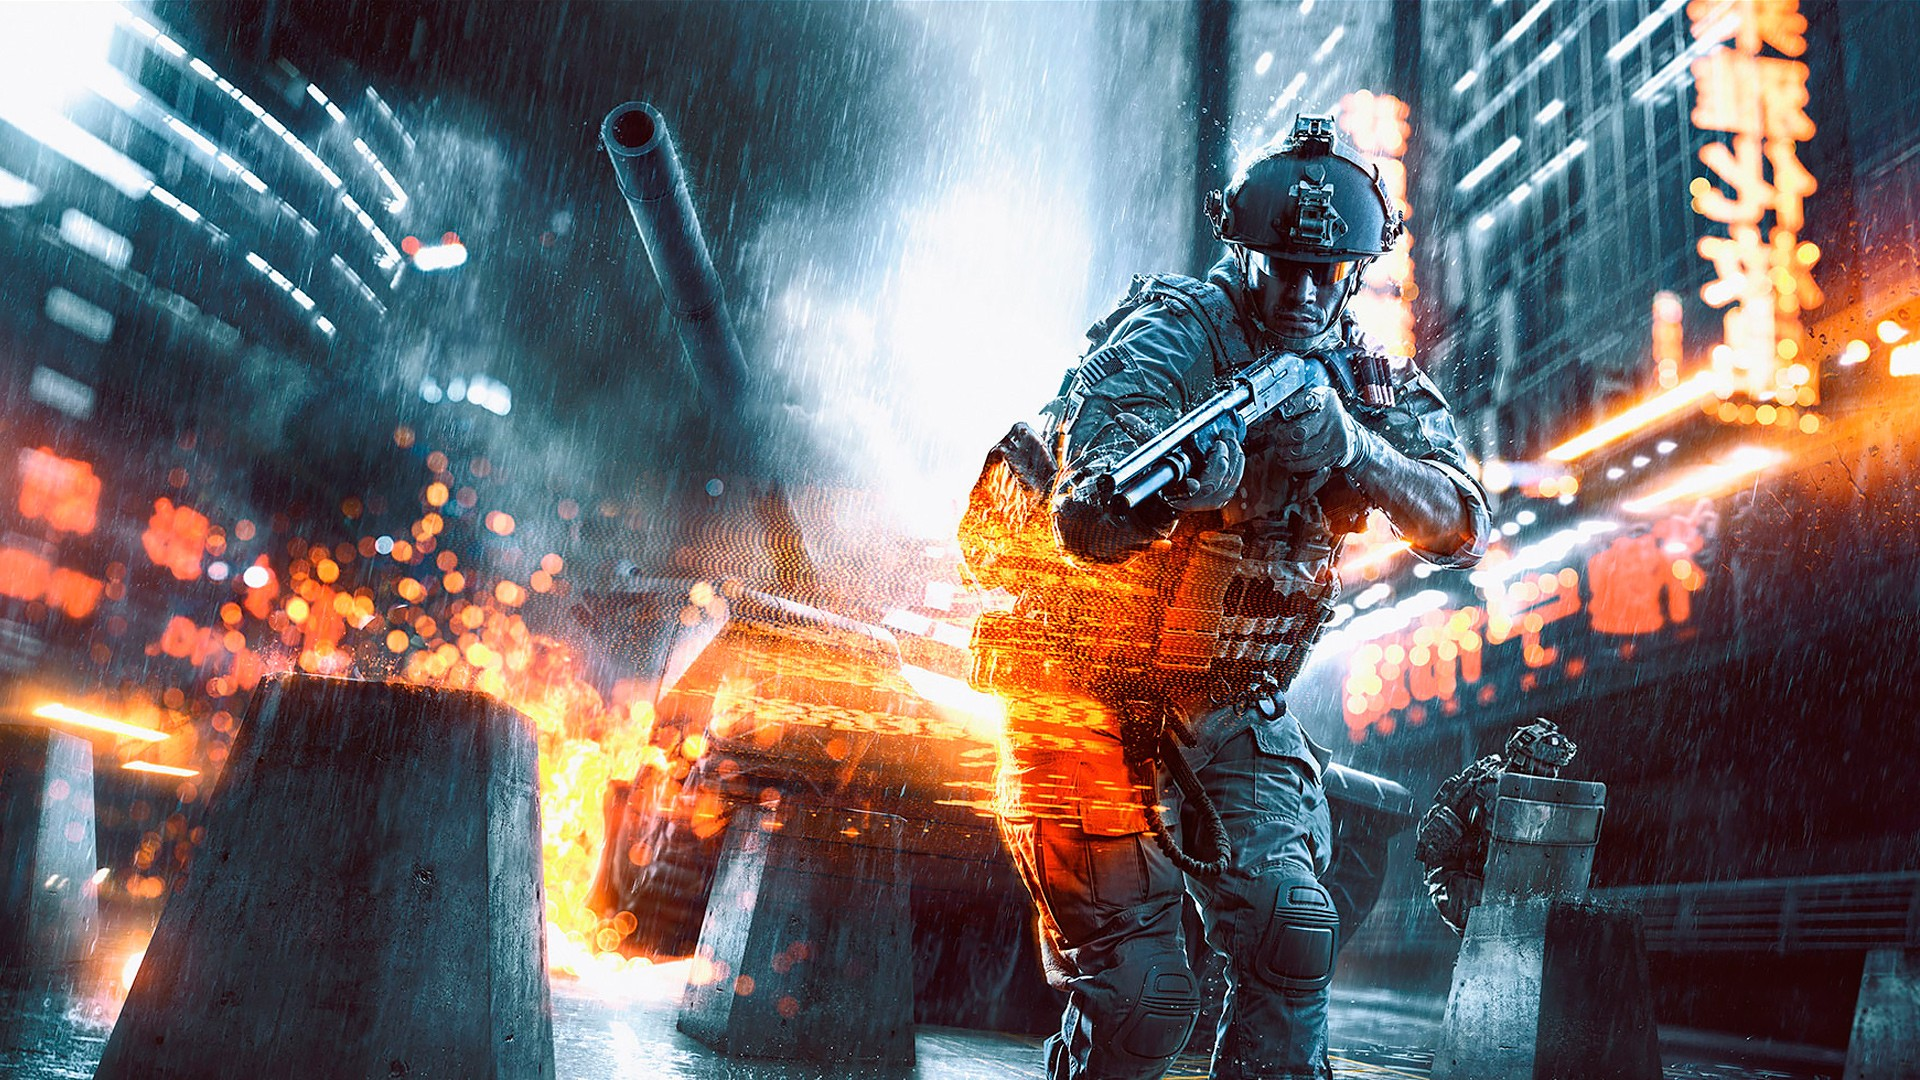 Battlefield 4 Games Wallpaper Hd: Battlefield 4 Game HD, HD Games, 4k Wallpapers, Images